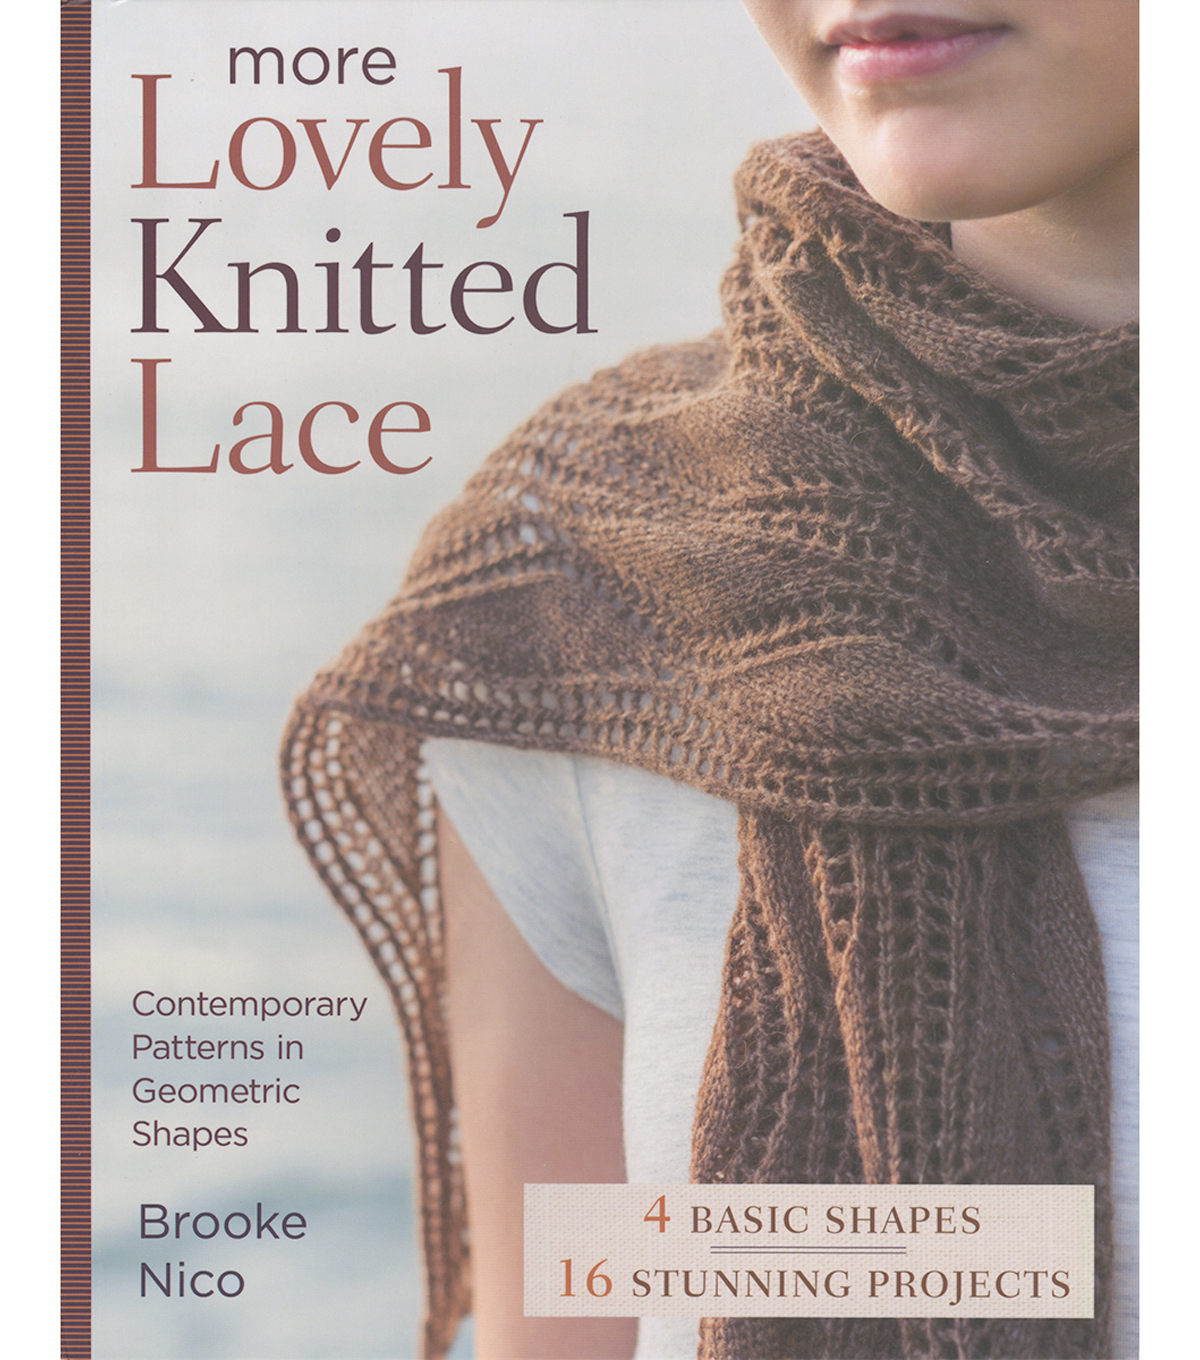 More Lovely Knitted Lace Book